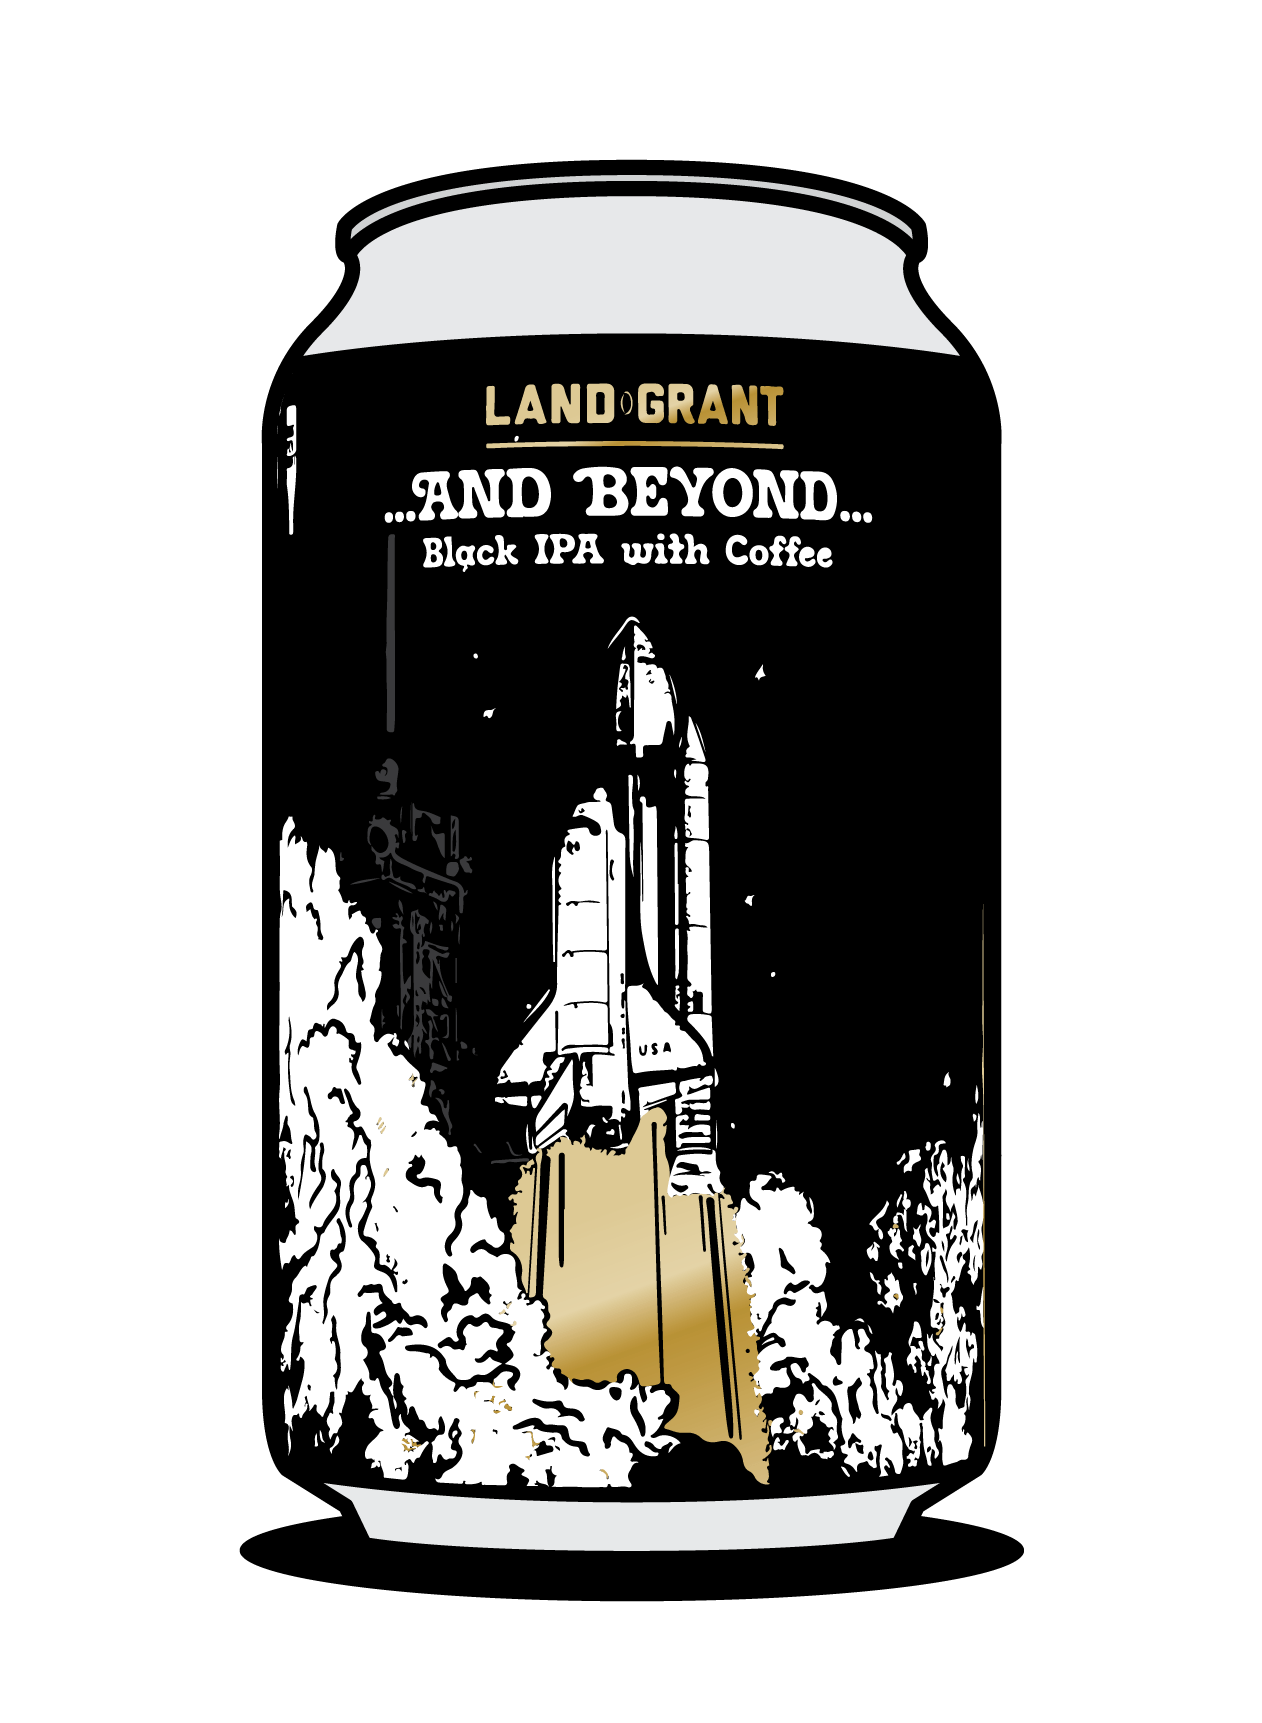 Space-Grant - ...And Beyond Image